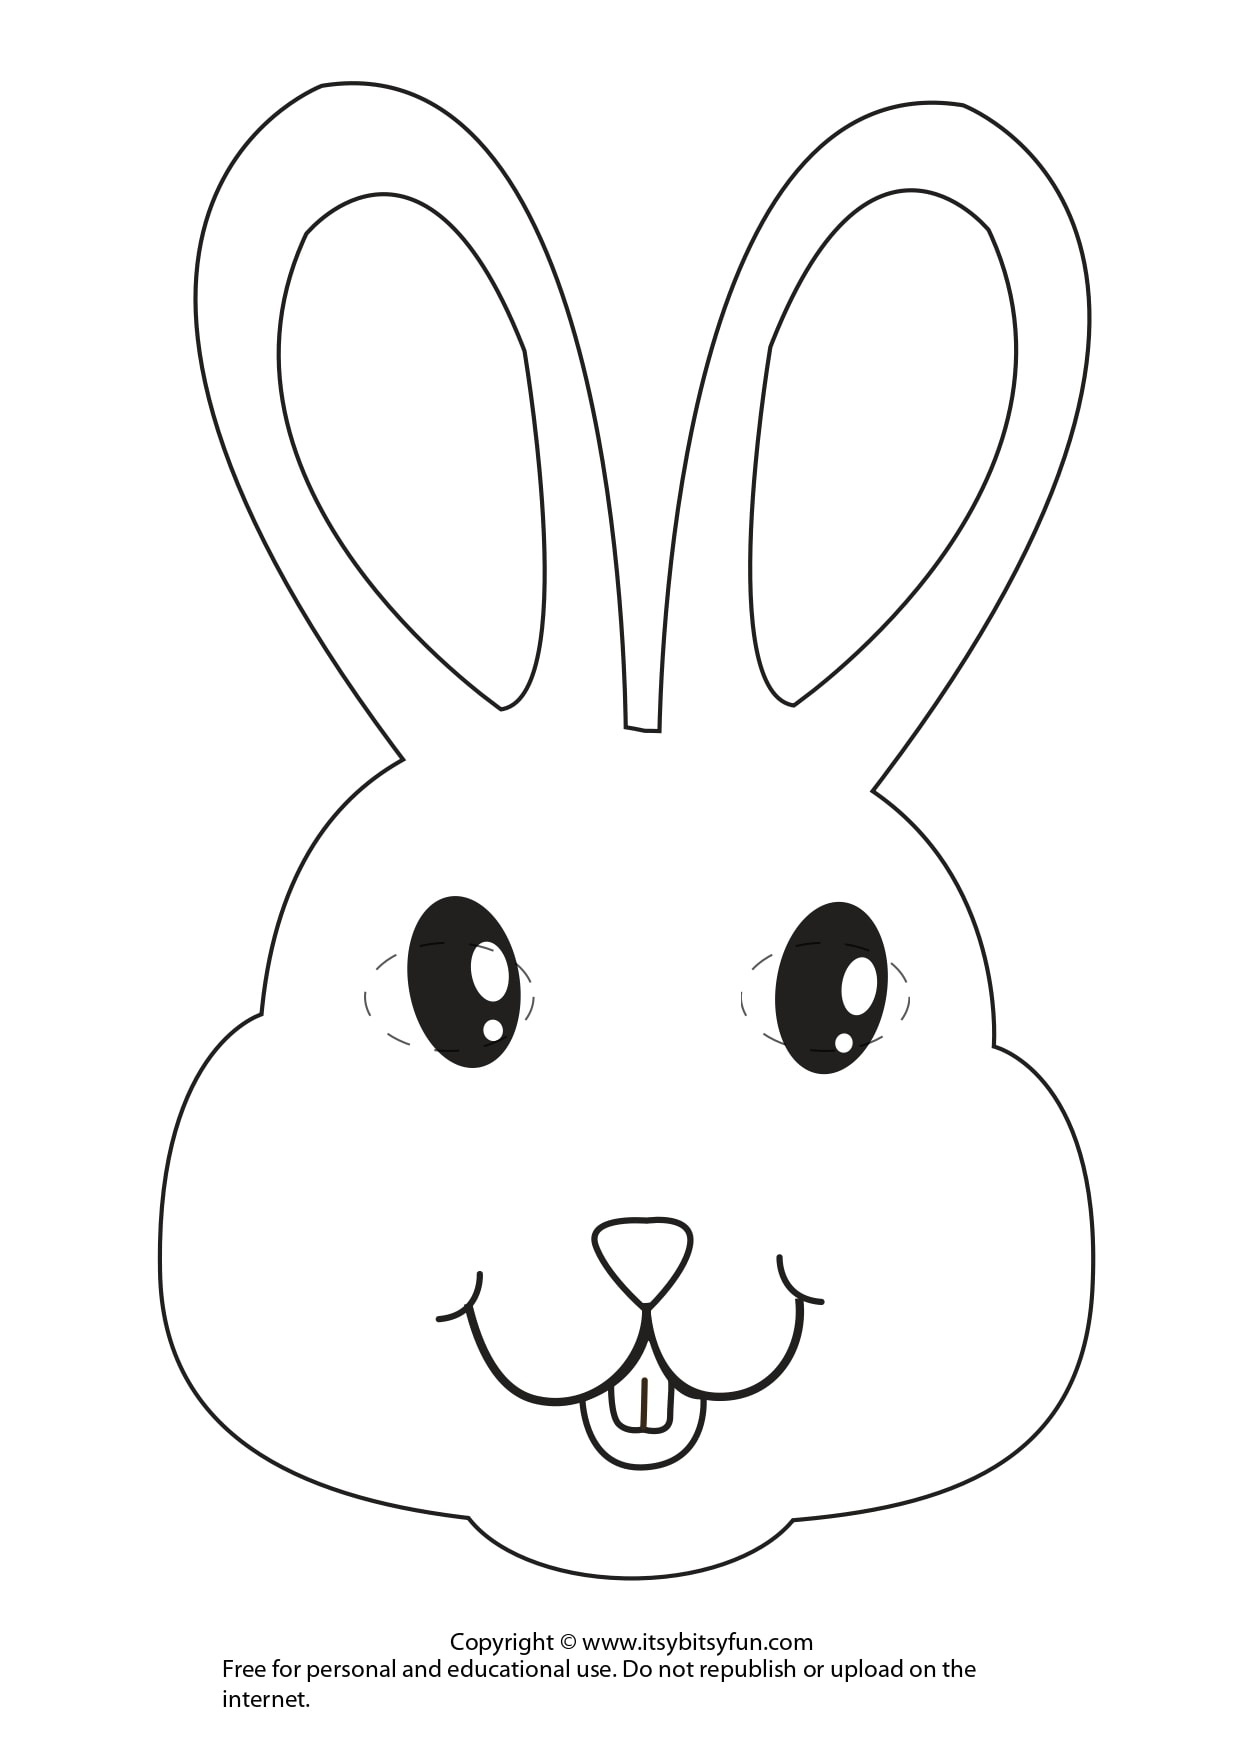 Easter Masks - Bunny Rabbit And Chick Template - Itsy Bitsy Fun - Free Printable Bunny Pictures